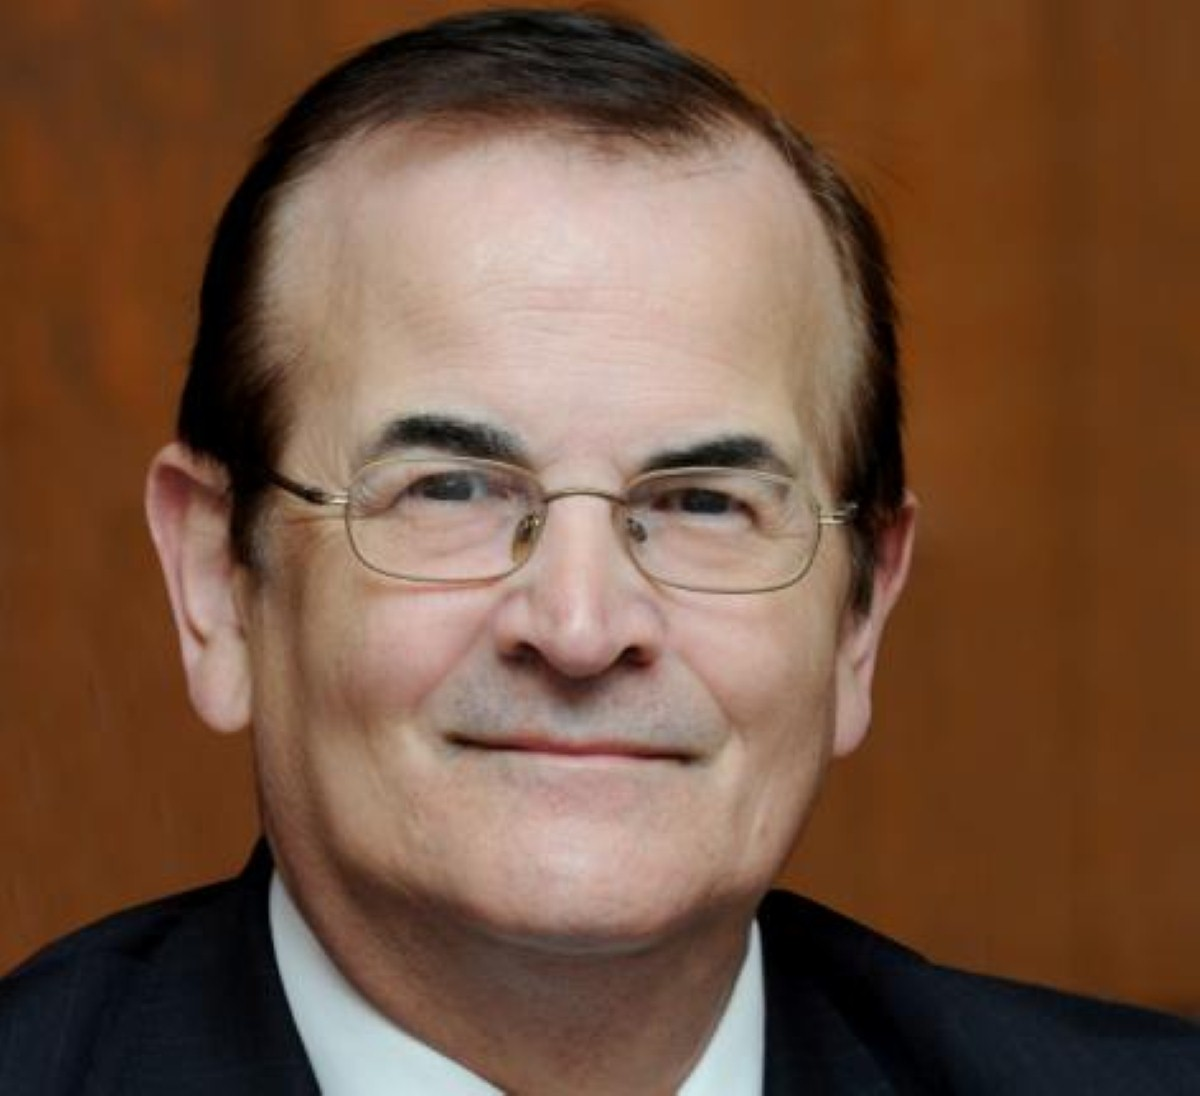 John Walker is the national chairman of the Federation of Small Businesses